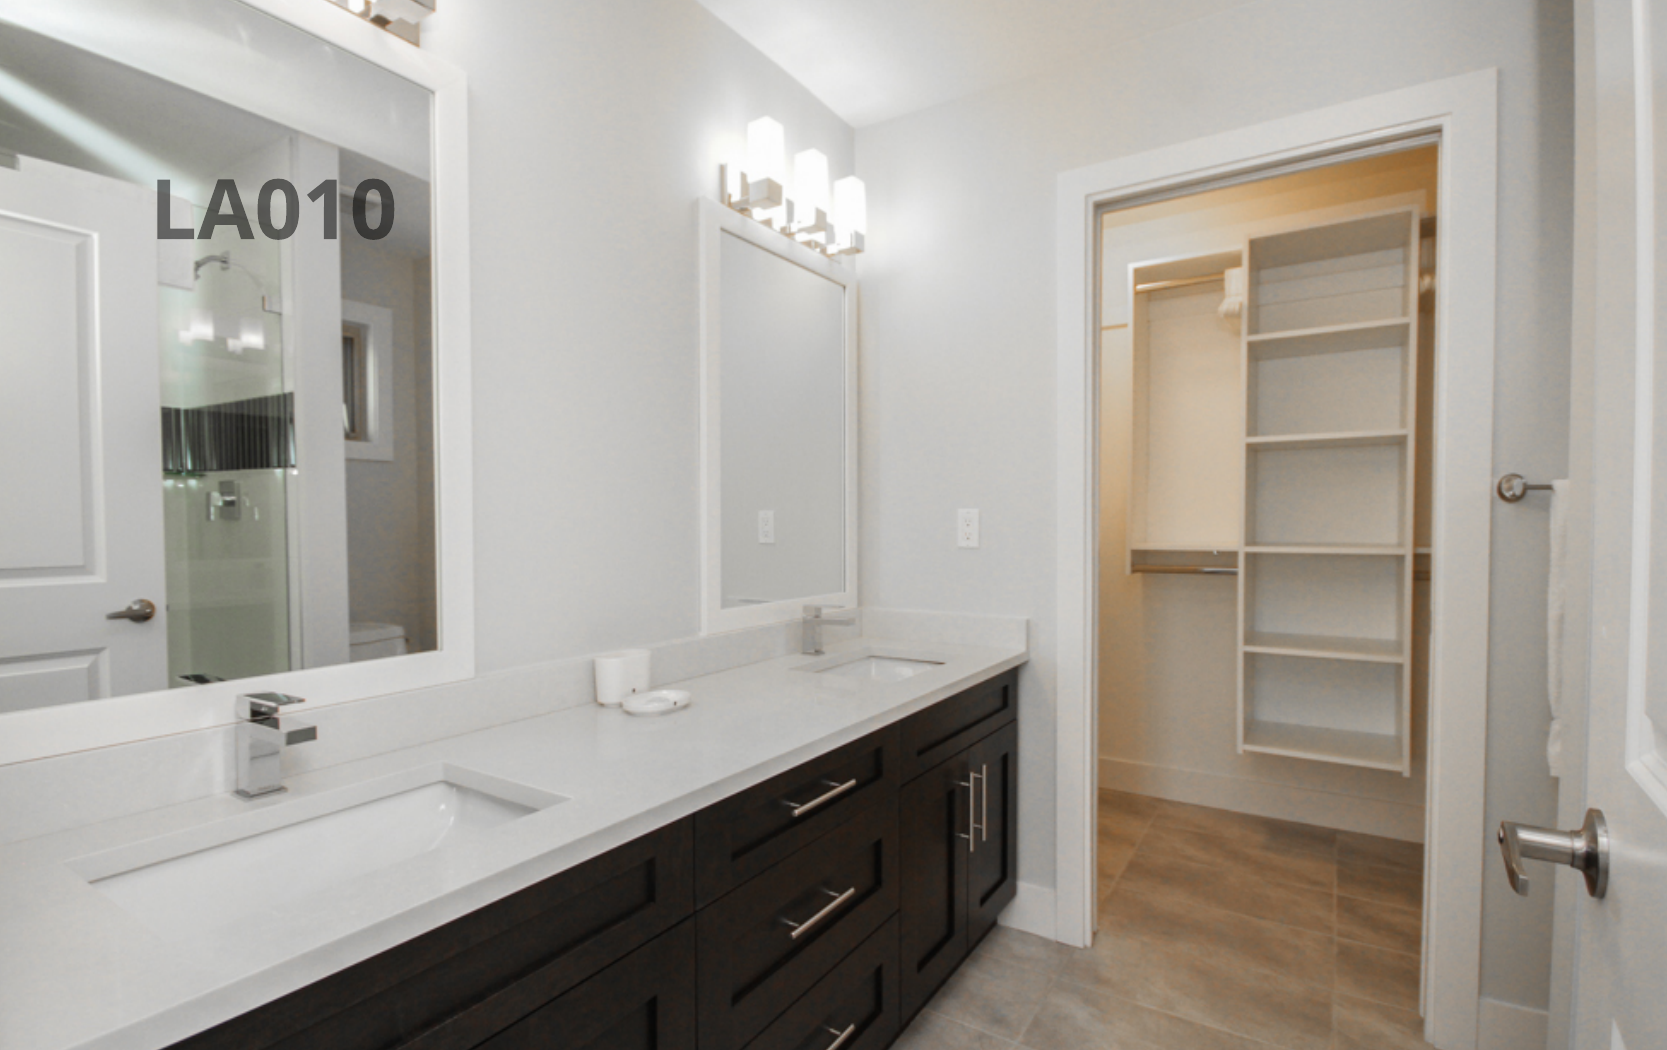 Furnished Apartment - Langley, B.C. Canada - HighStreet Accommodations